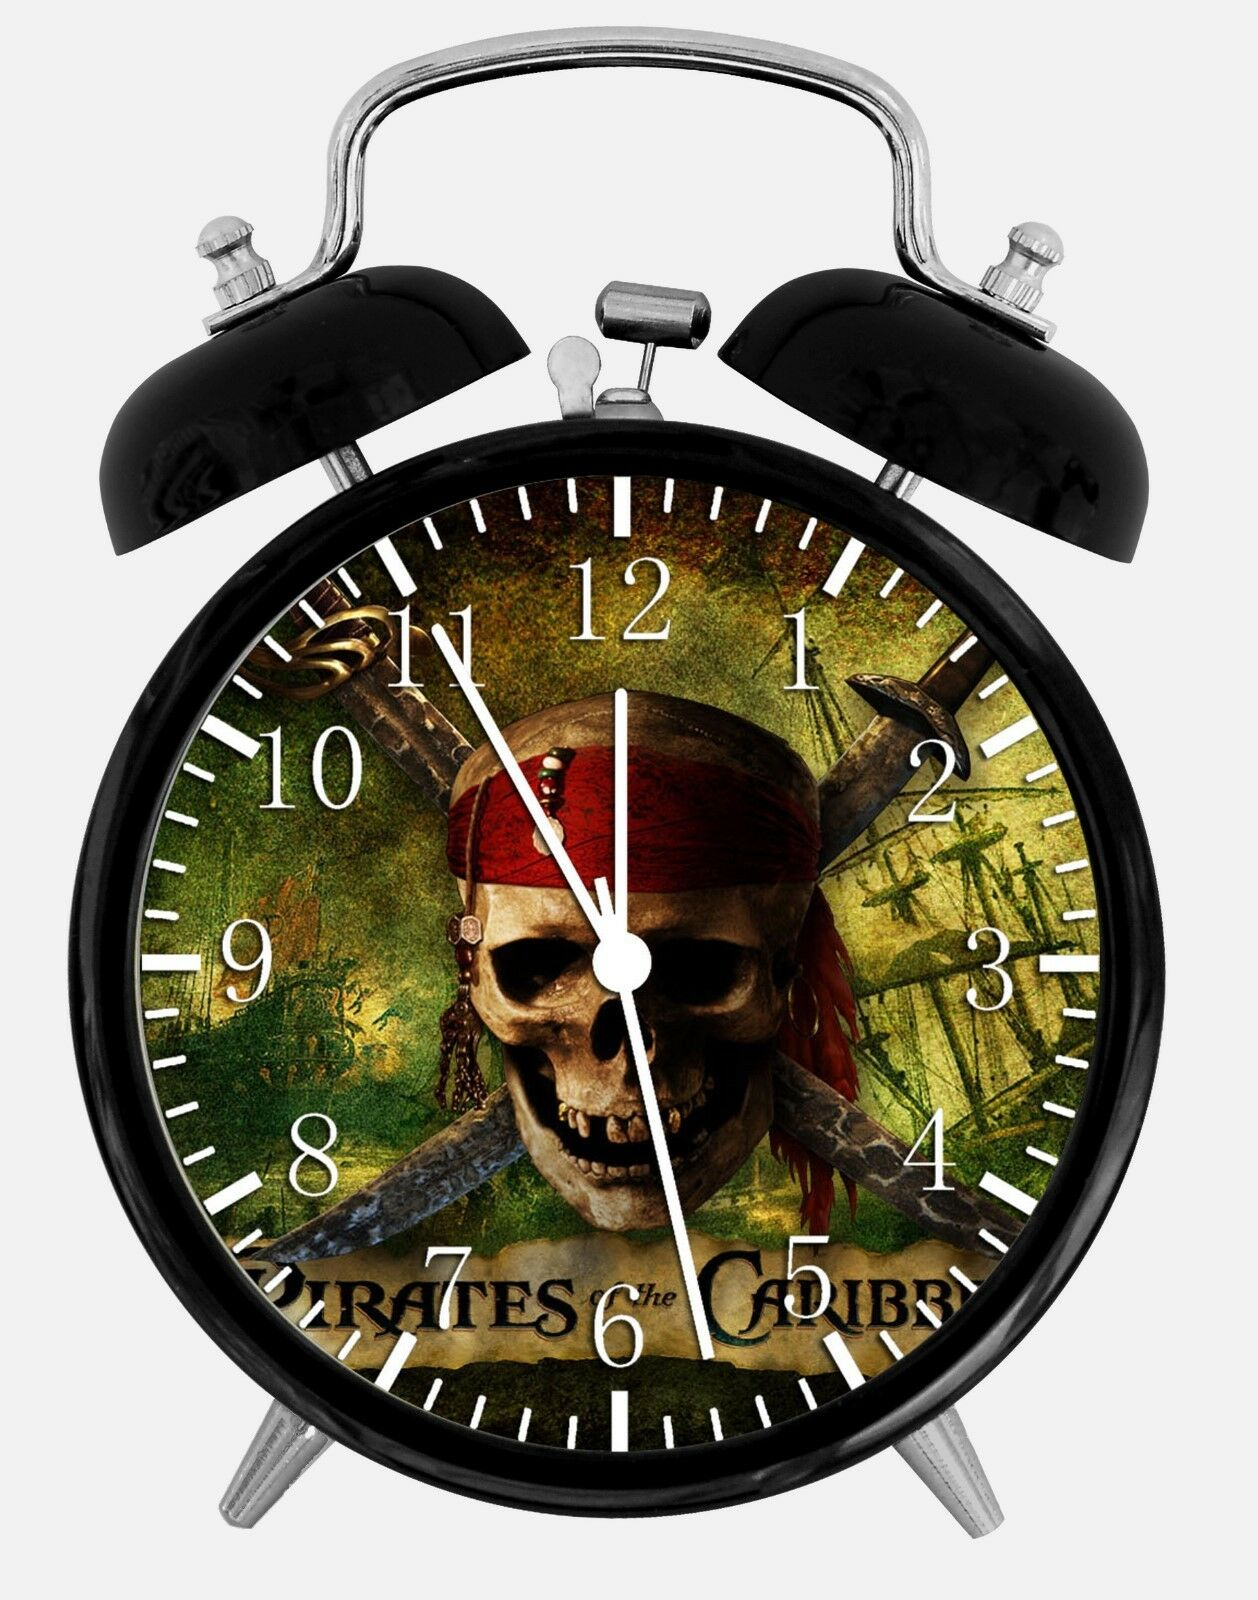 "Pirates of the Caribbean Alarm Desk Clock 3.75"" Room Office Decor W149 Nice Gift"